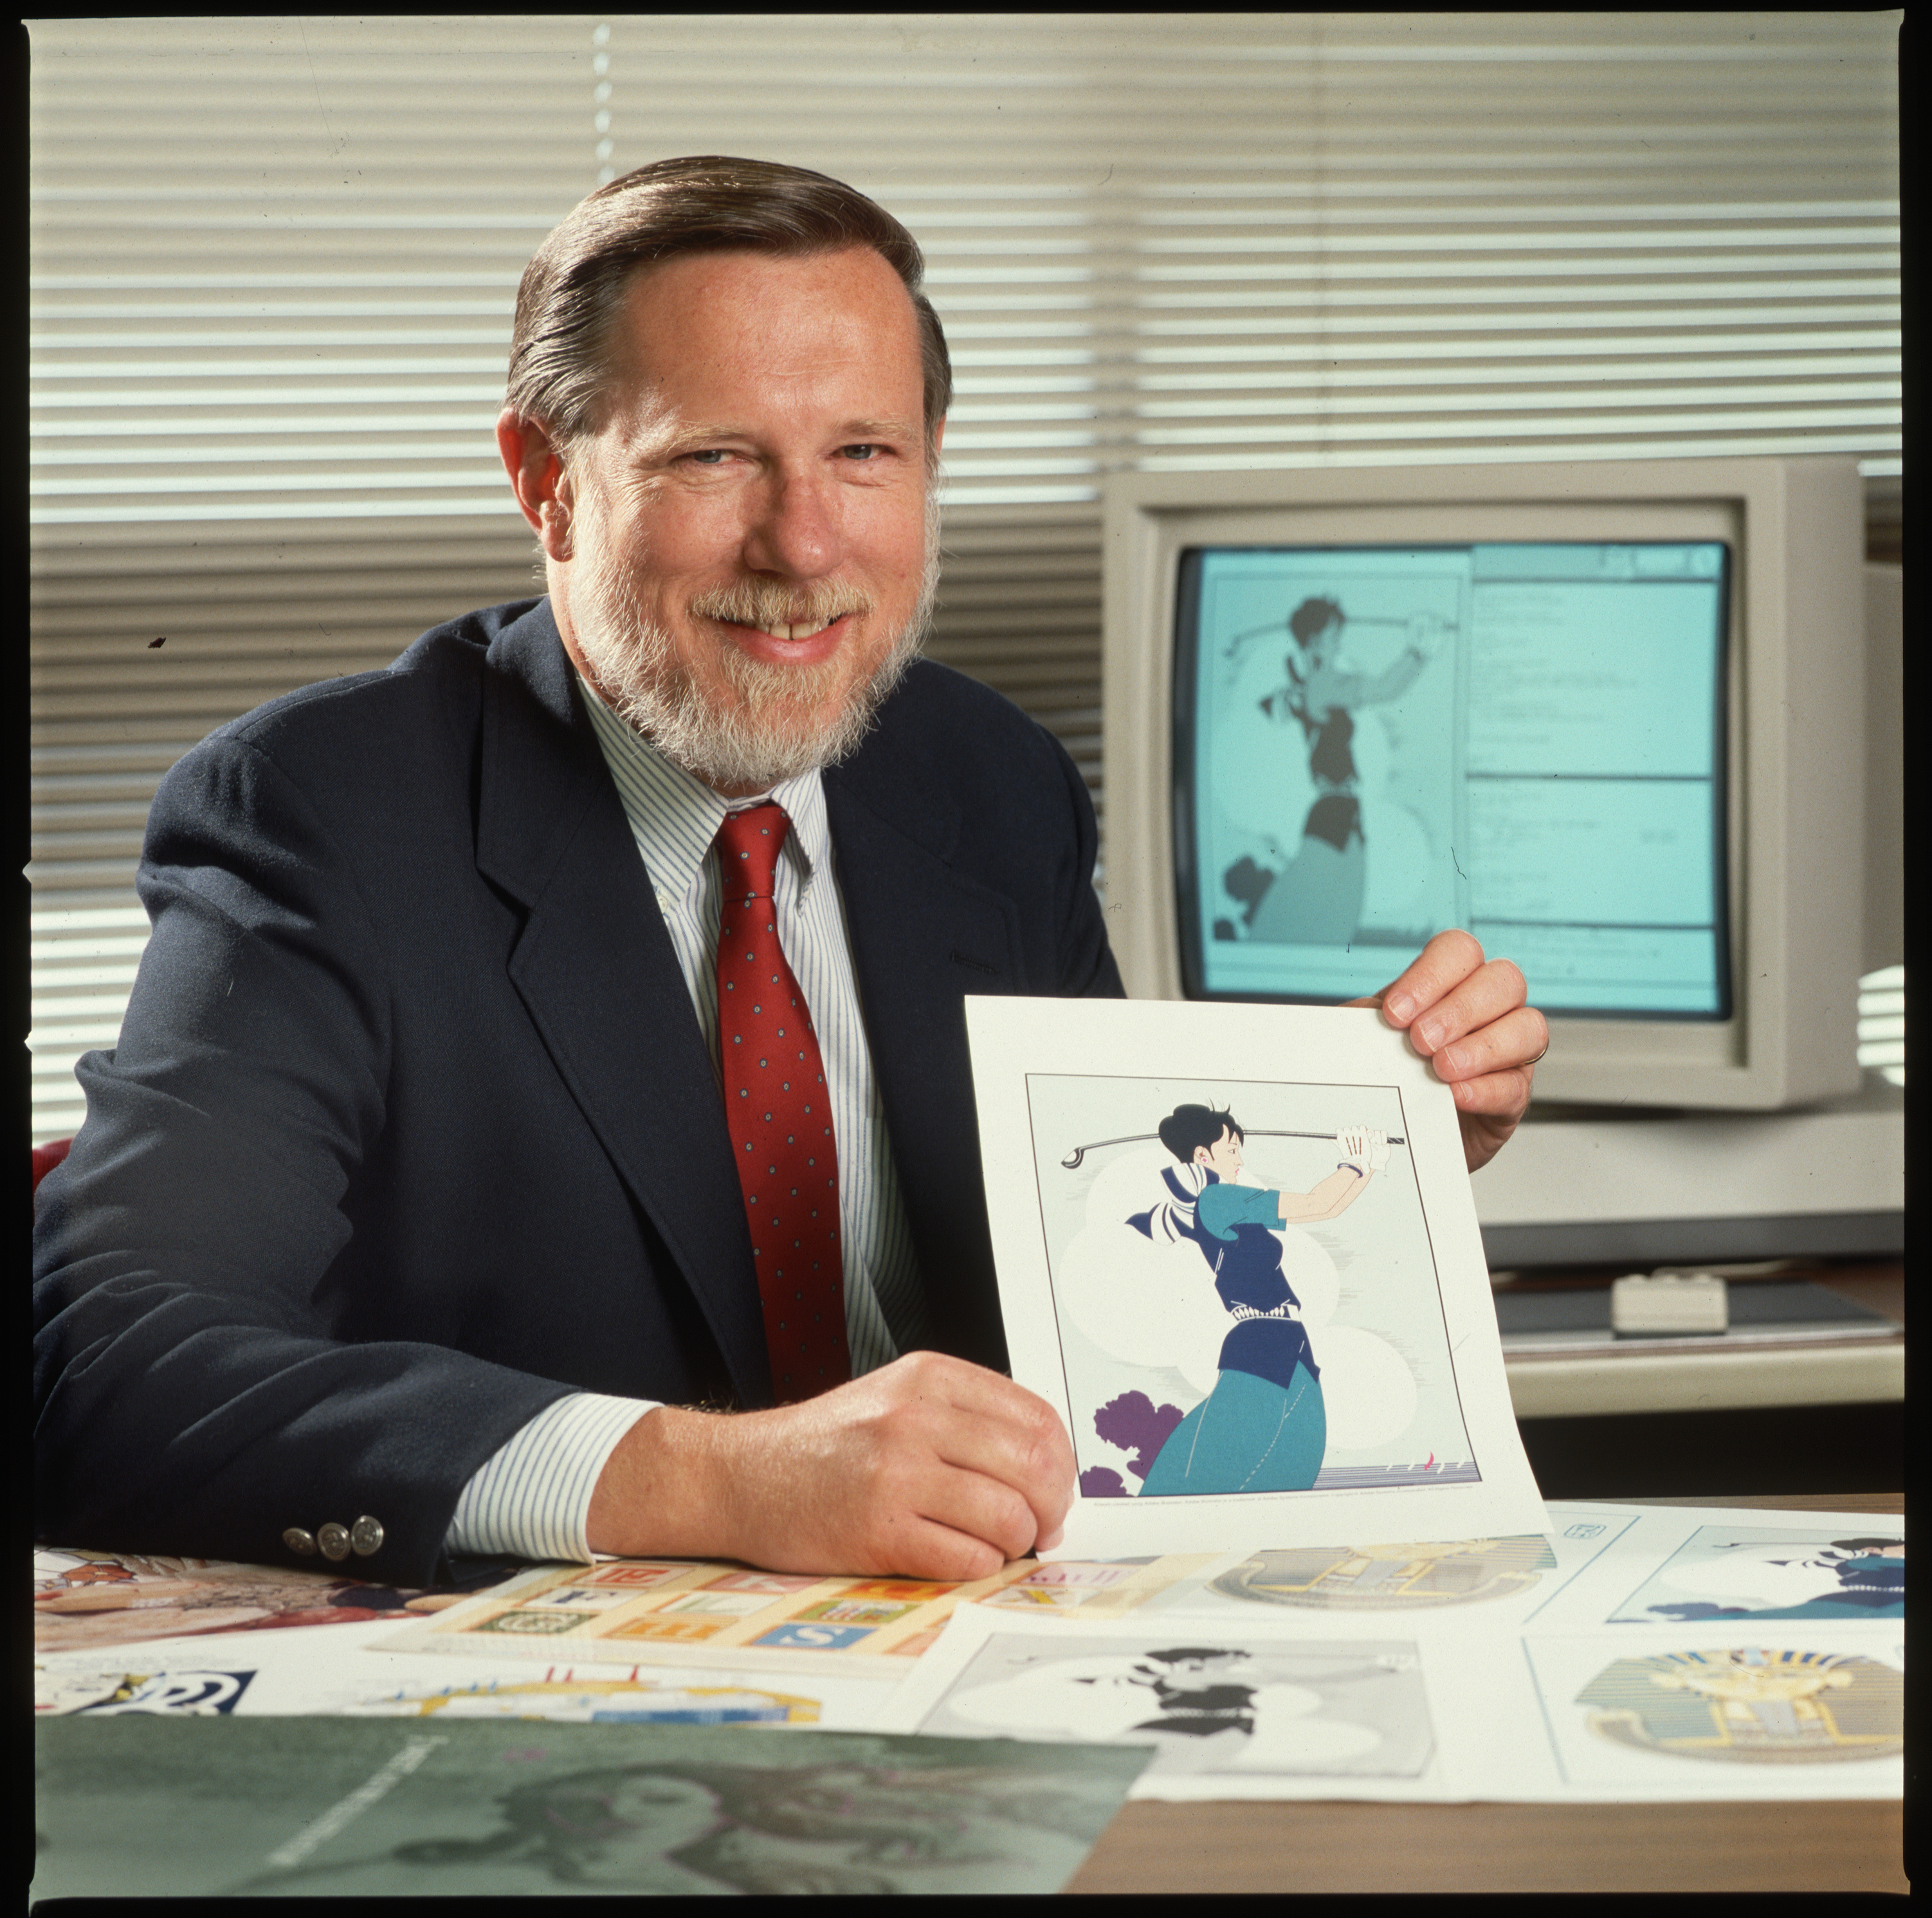 Vice President of Adobe Software